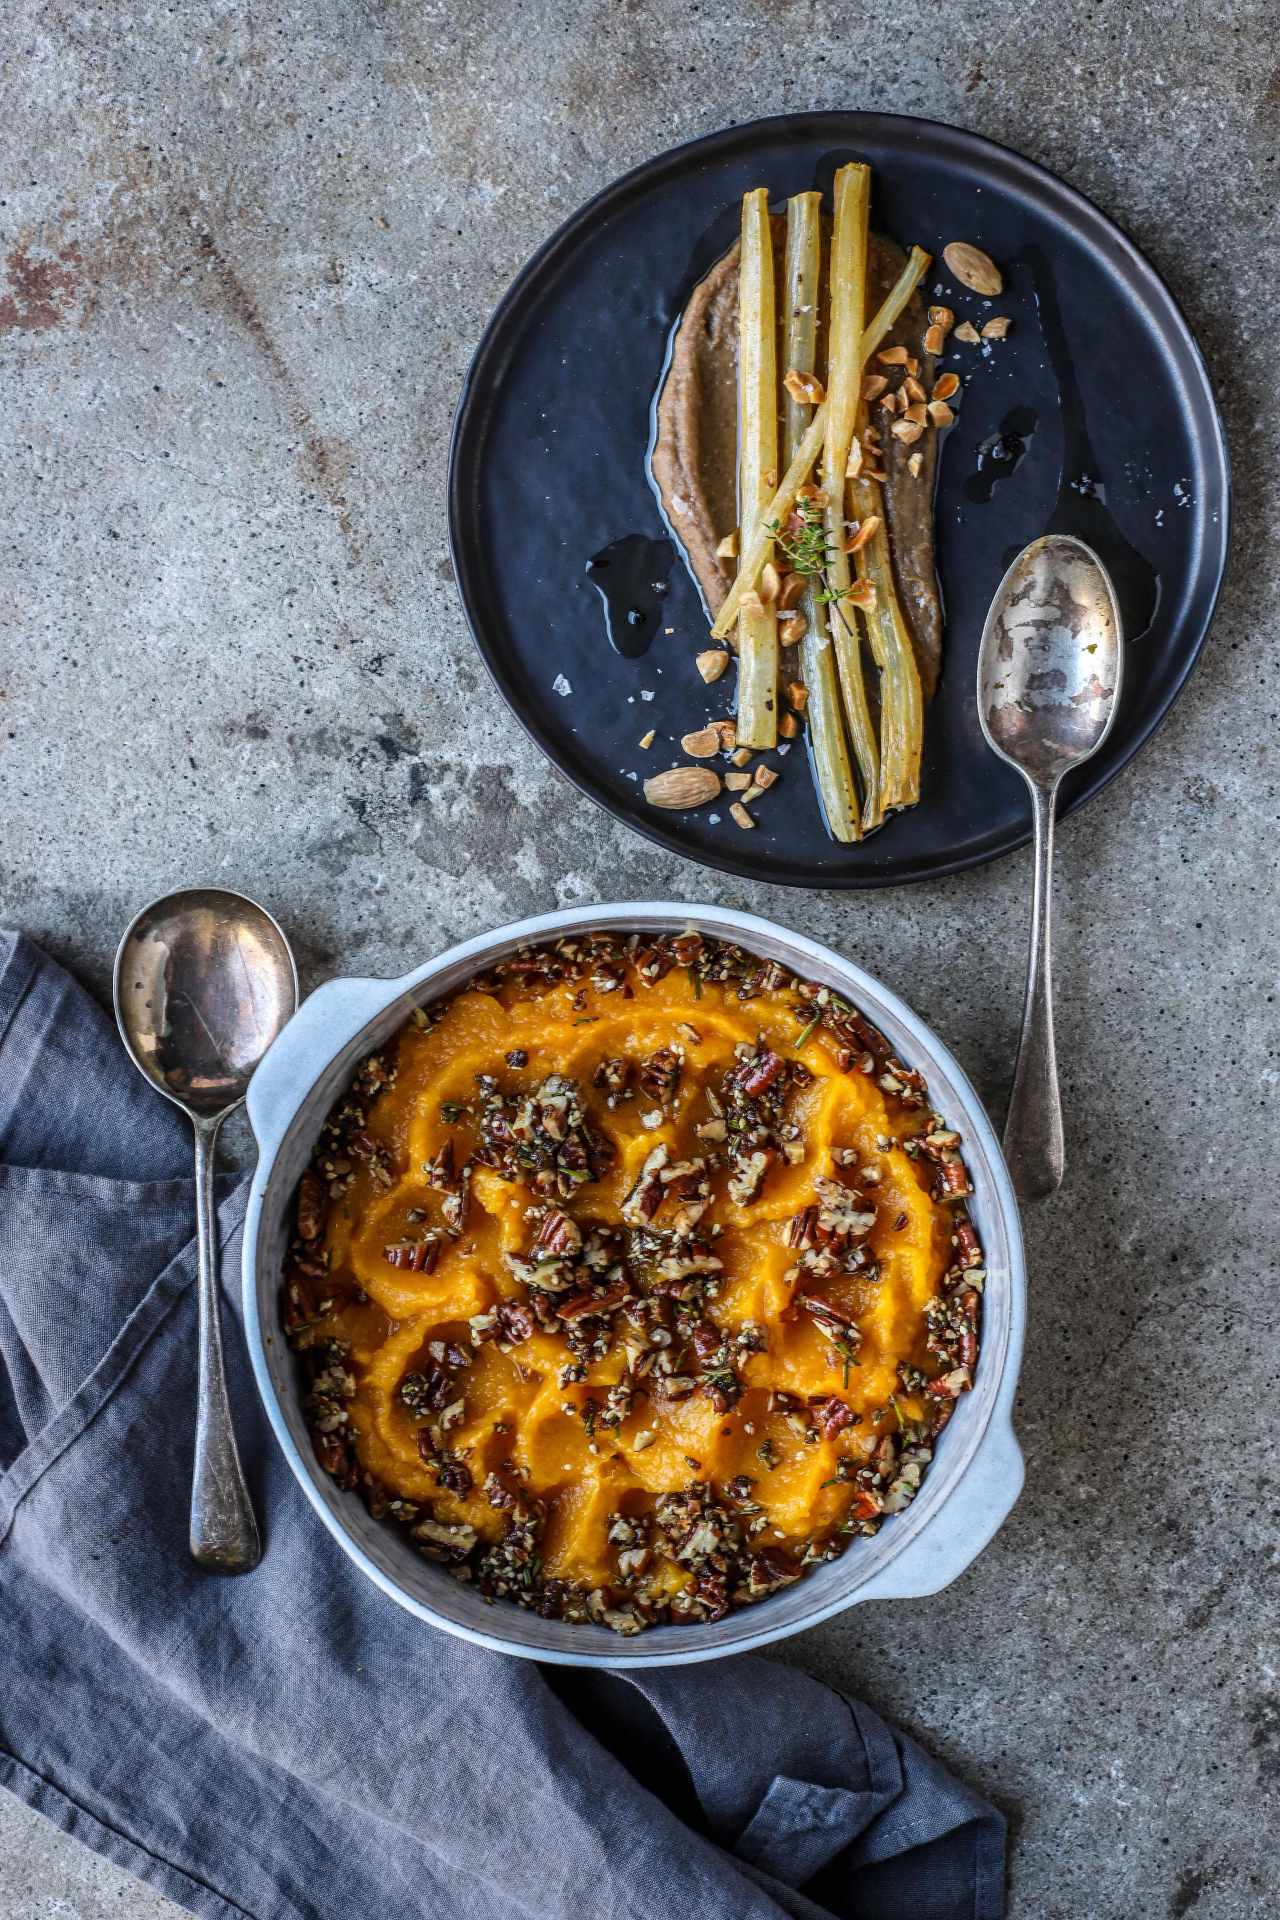 Swirls of roasted butternut squash mash topped with crunchy sweet-savory rosemary pecans. An easy and incredibly delicious side dish for holidays or any autumn-winter dinner. #vegetarian #sidedish #butternutsquash #Thanksgiving #Christmas #easyrecipe #makeahead